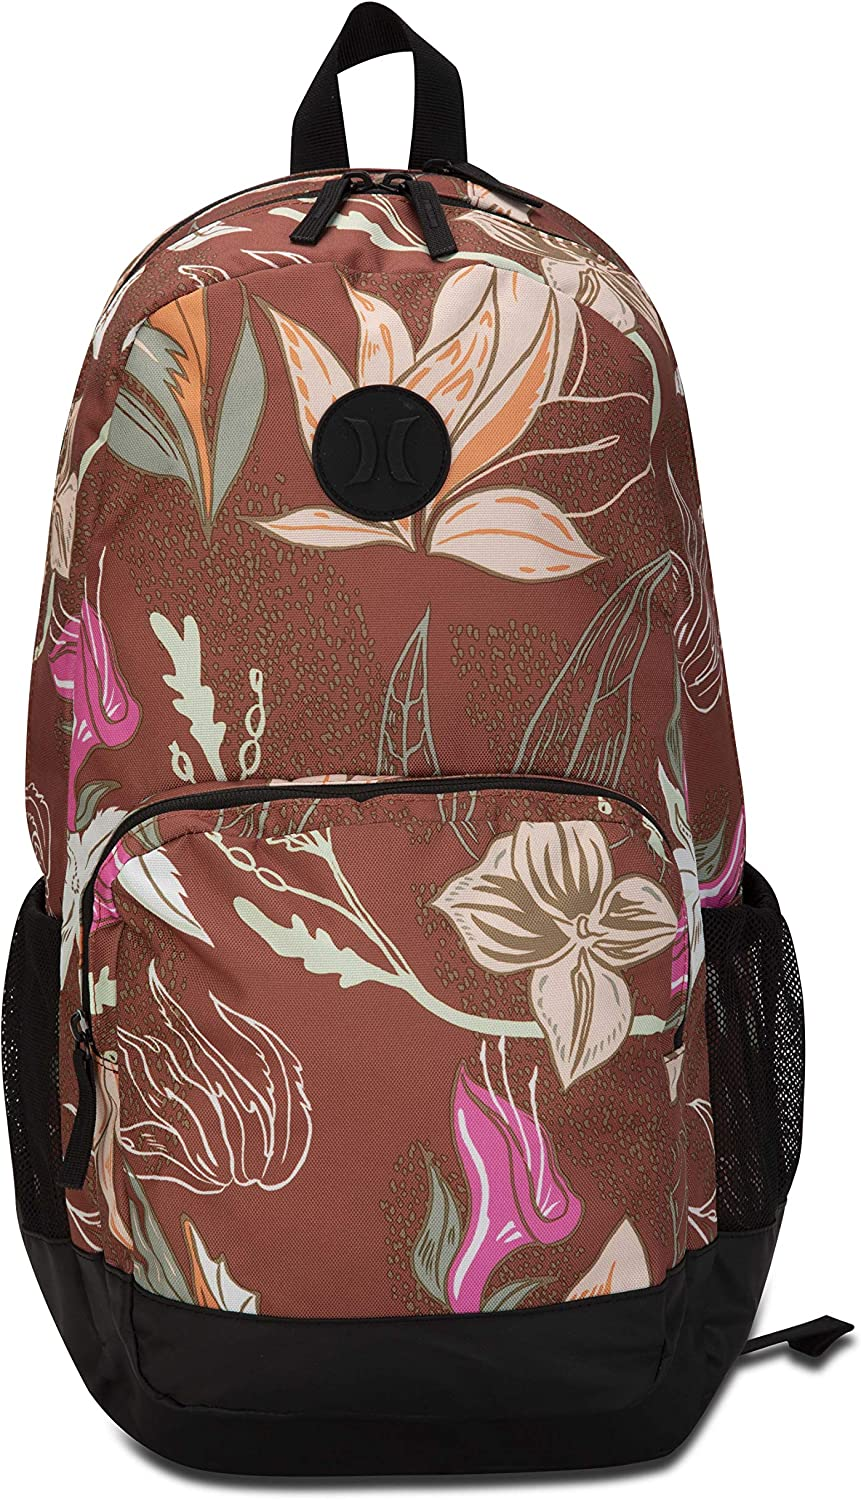 Hurley Women's W Printed Renegade Backpack, Dusty Peach, One Size